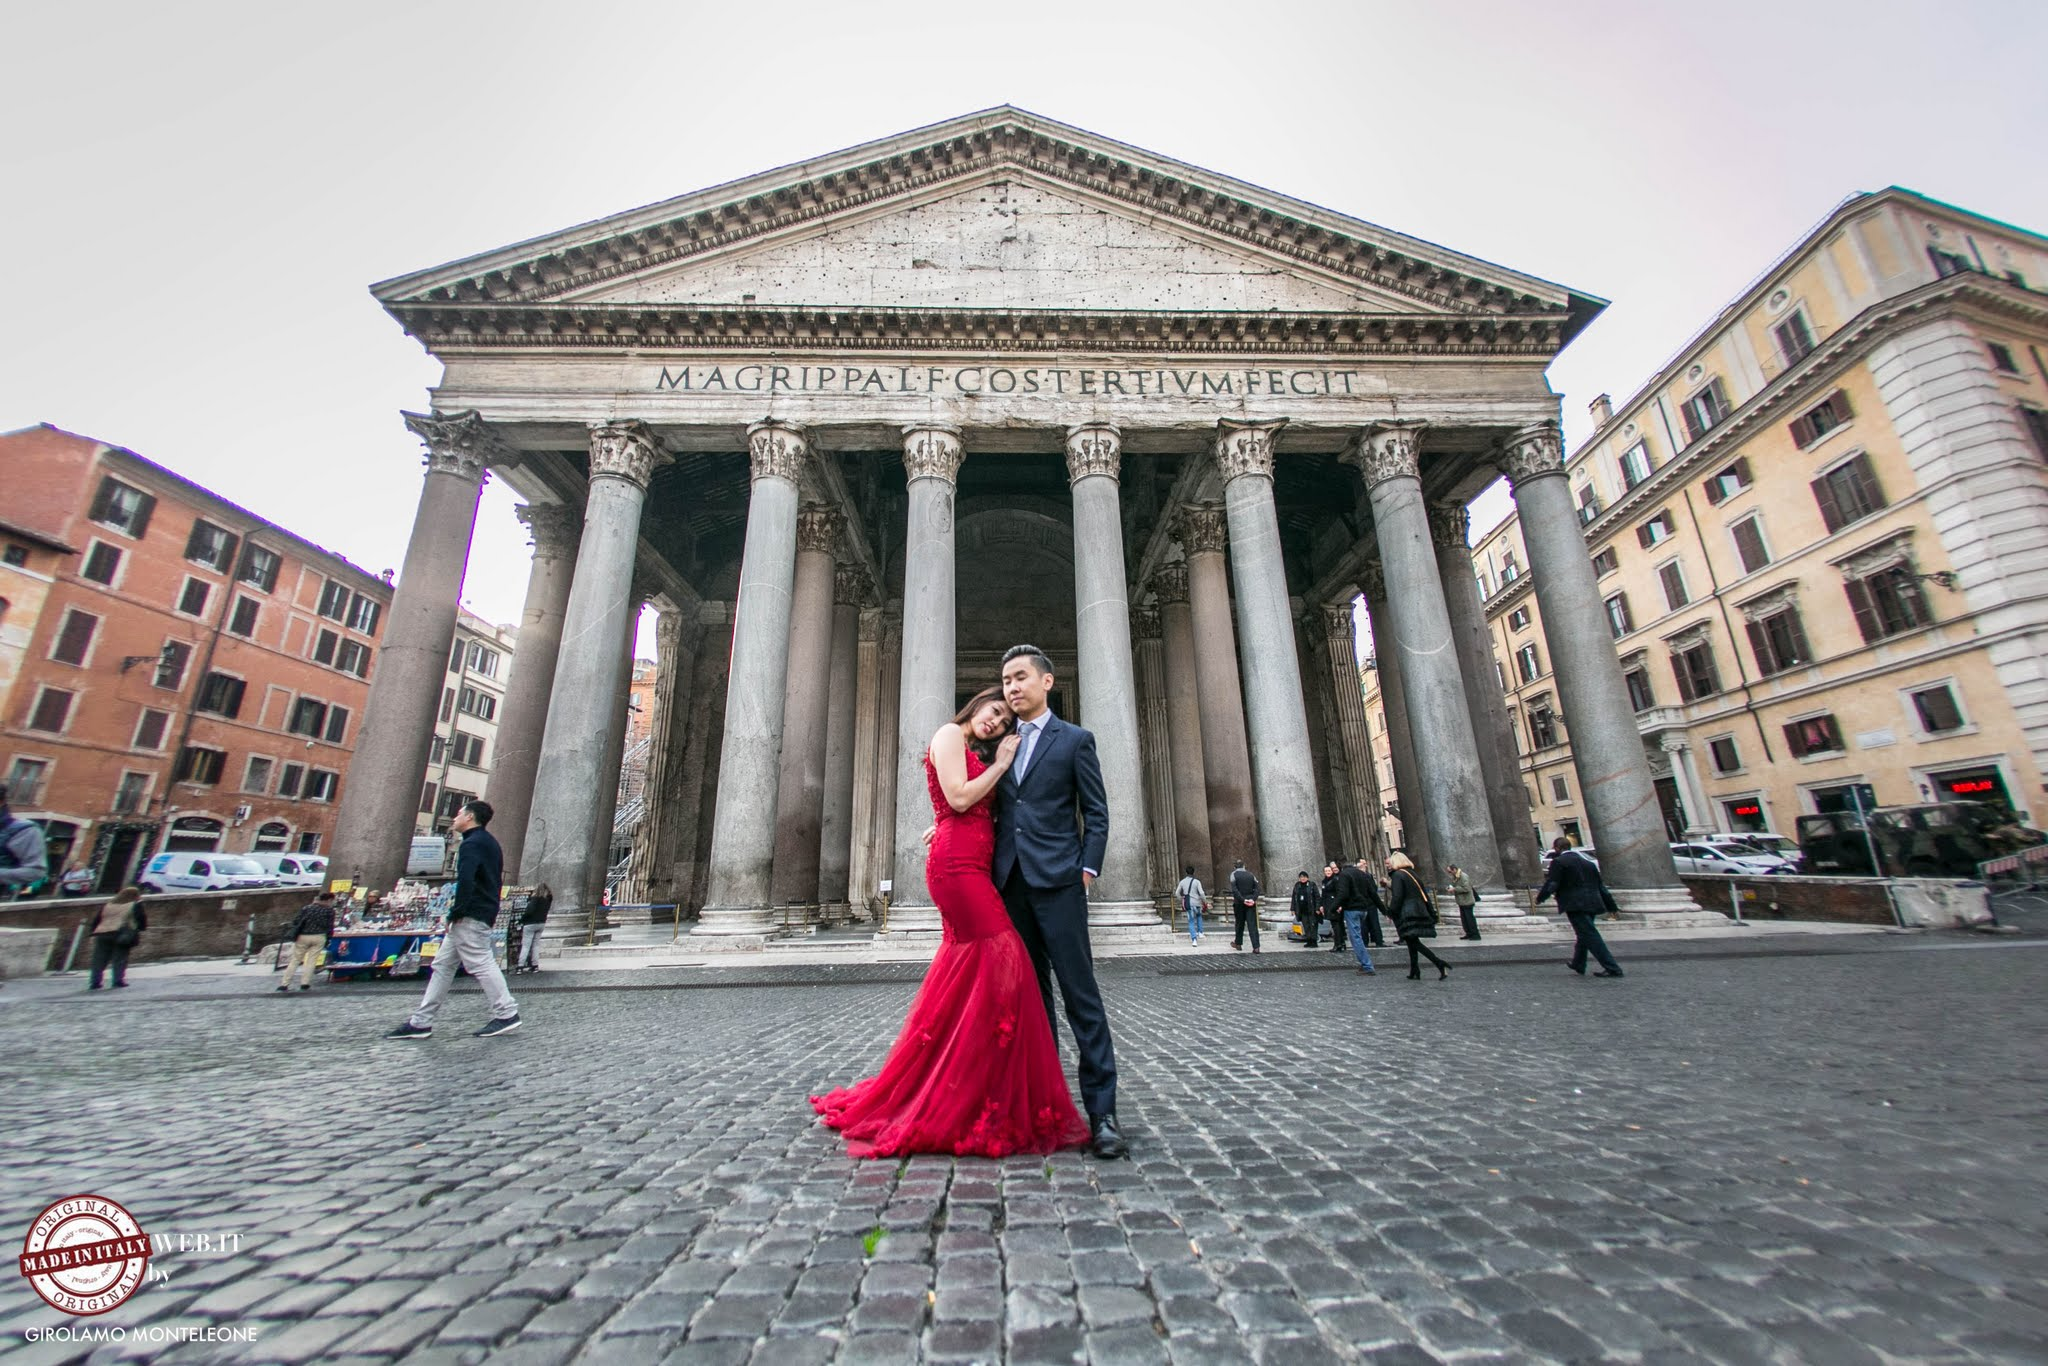 罗马_意大利_摄影师_photographer_in_rome_honeymoon__PHOTOSHOOTING_IN_ROME_ITALY_GERALD_&_JENIE_FROM_SINGAPORE_GIROLAMO_MONTELEONE_PHOTOJOURNALIST2017novembre250906222031